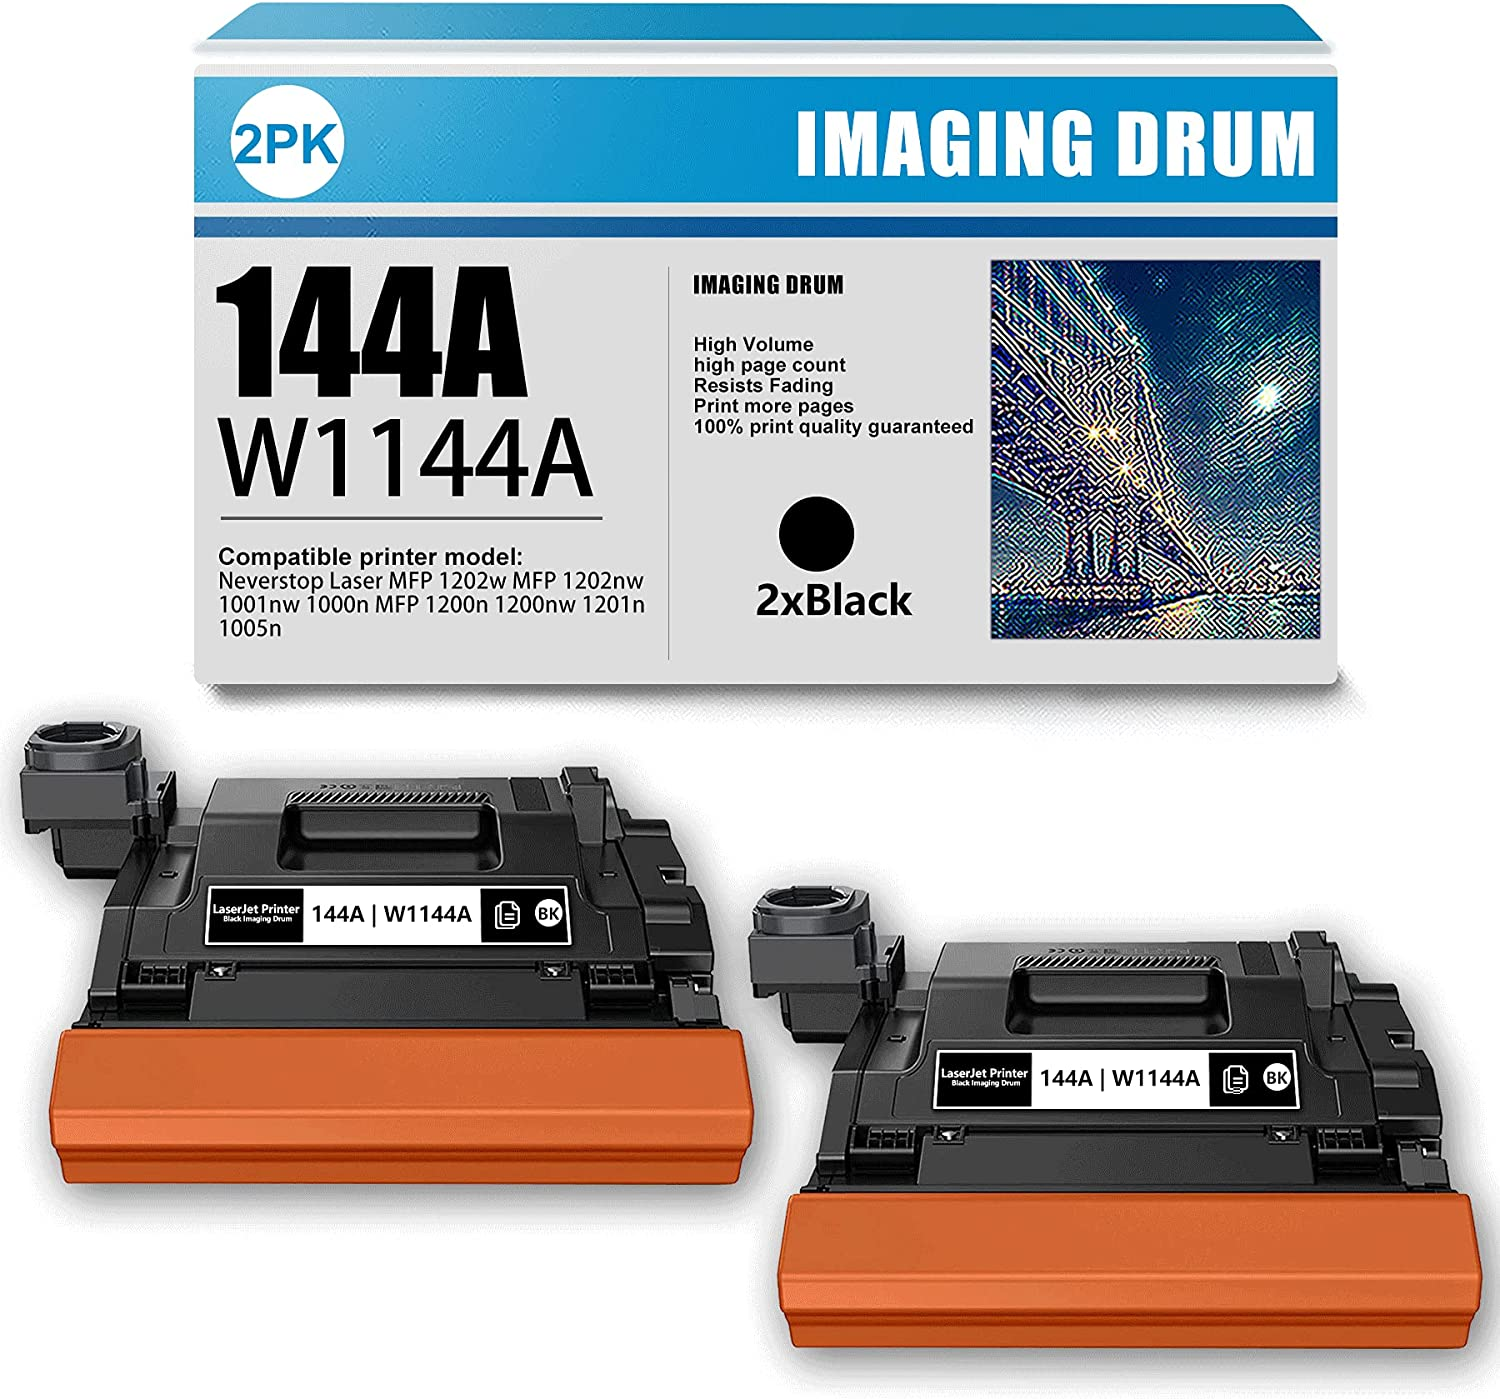 2 Pack Black Compatible 144A | W1144A Imaging Drum Replacement for HP Neverstop Laser MFP 1202w MFP 1202nw 1001nw 1000n MFP 1200n 1200nw 1201n 1005n Printer (High Yield)